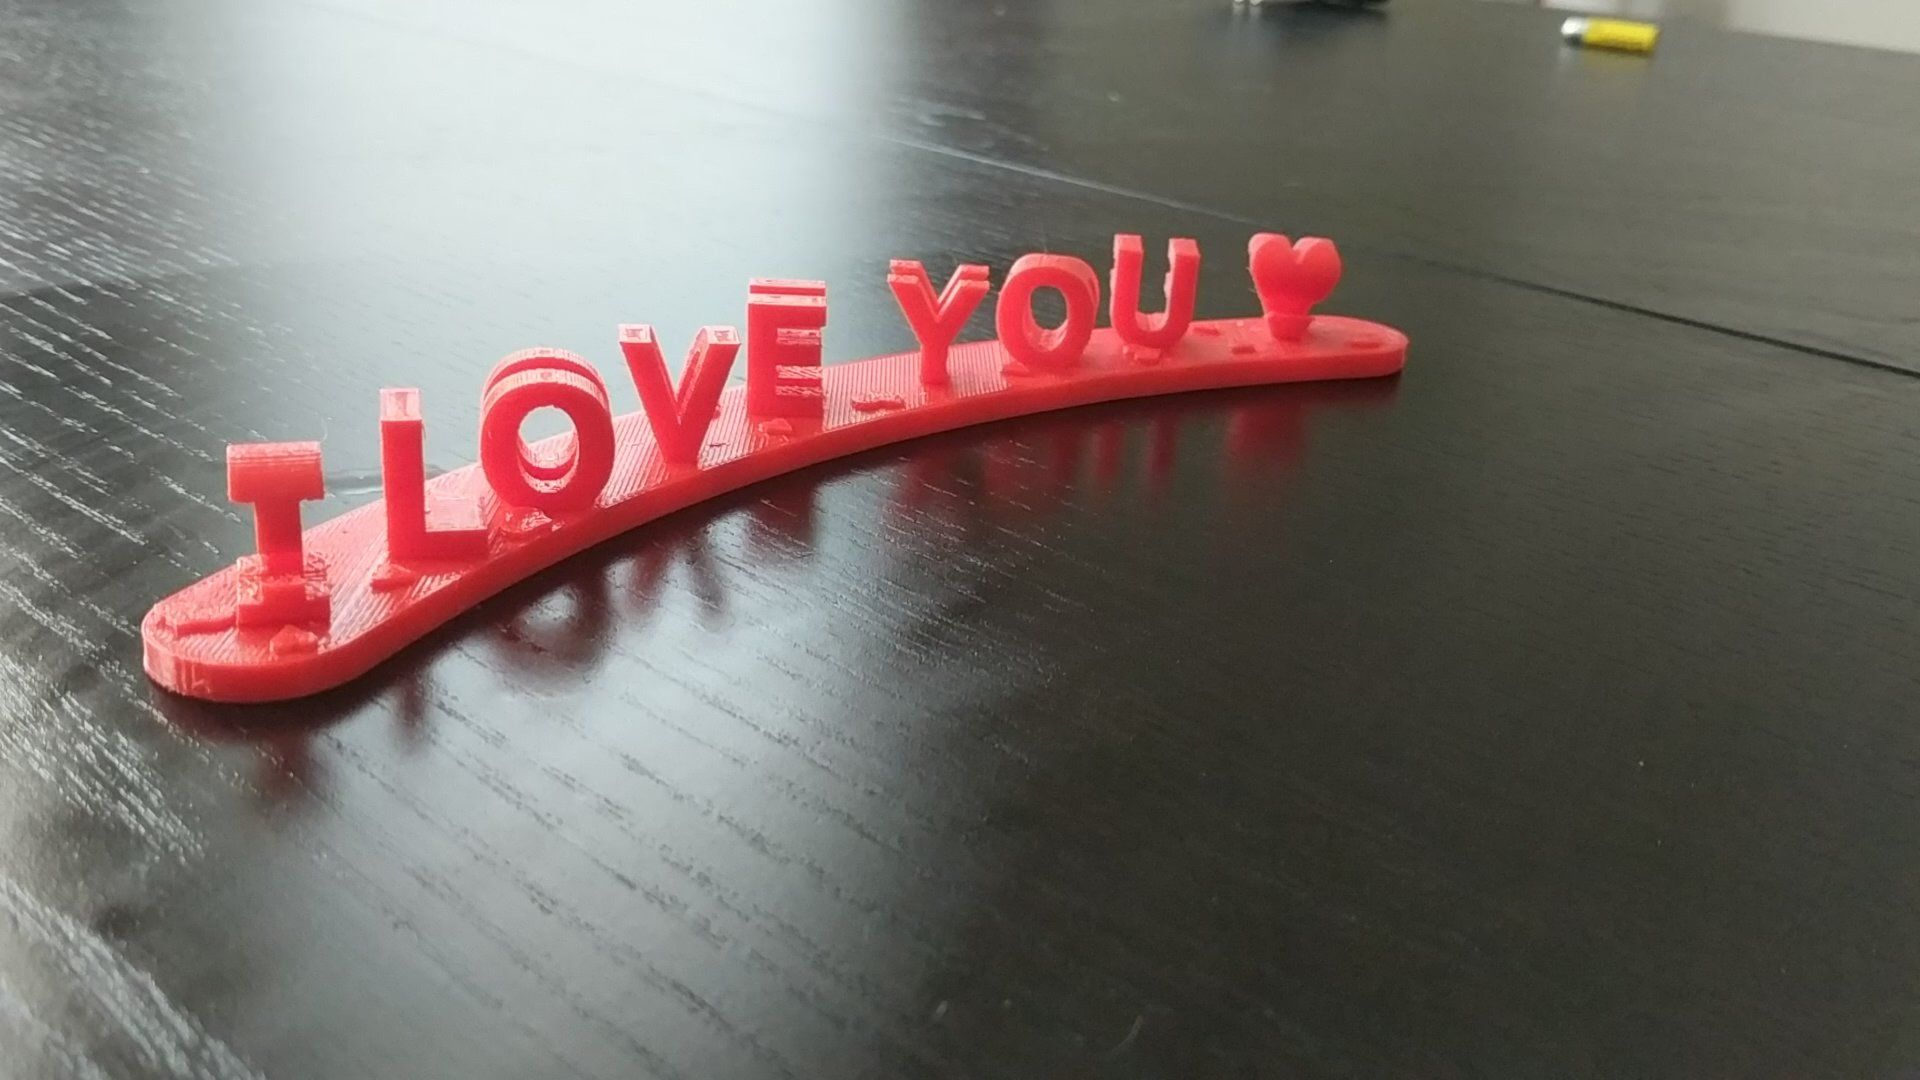 I too 3d printed a gift for my girlfriend for valentines